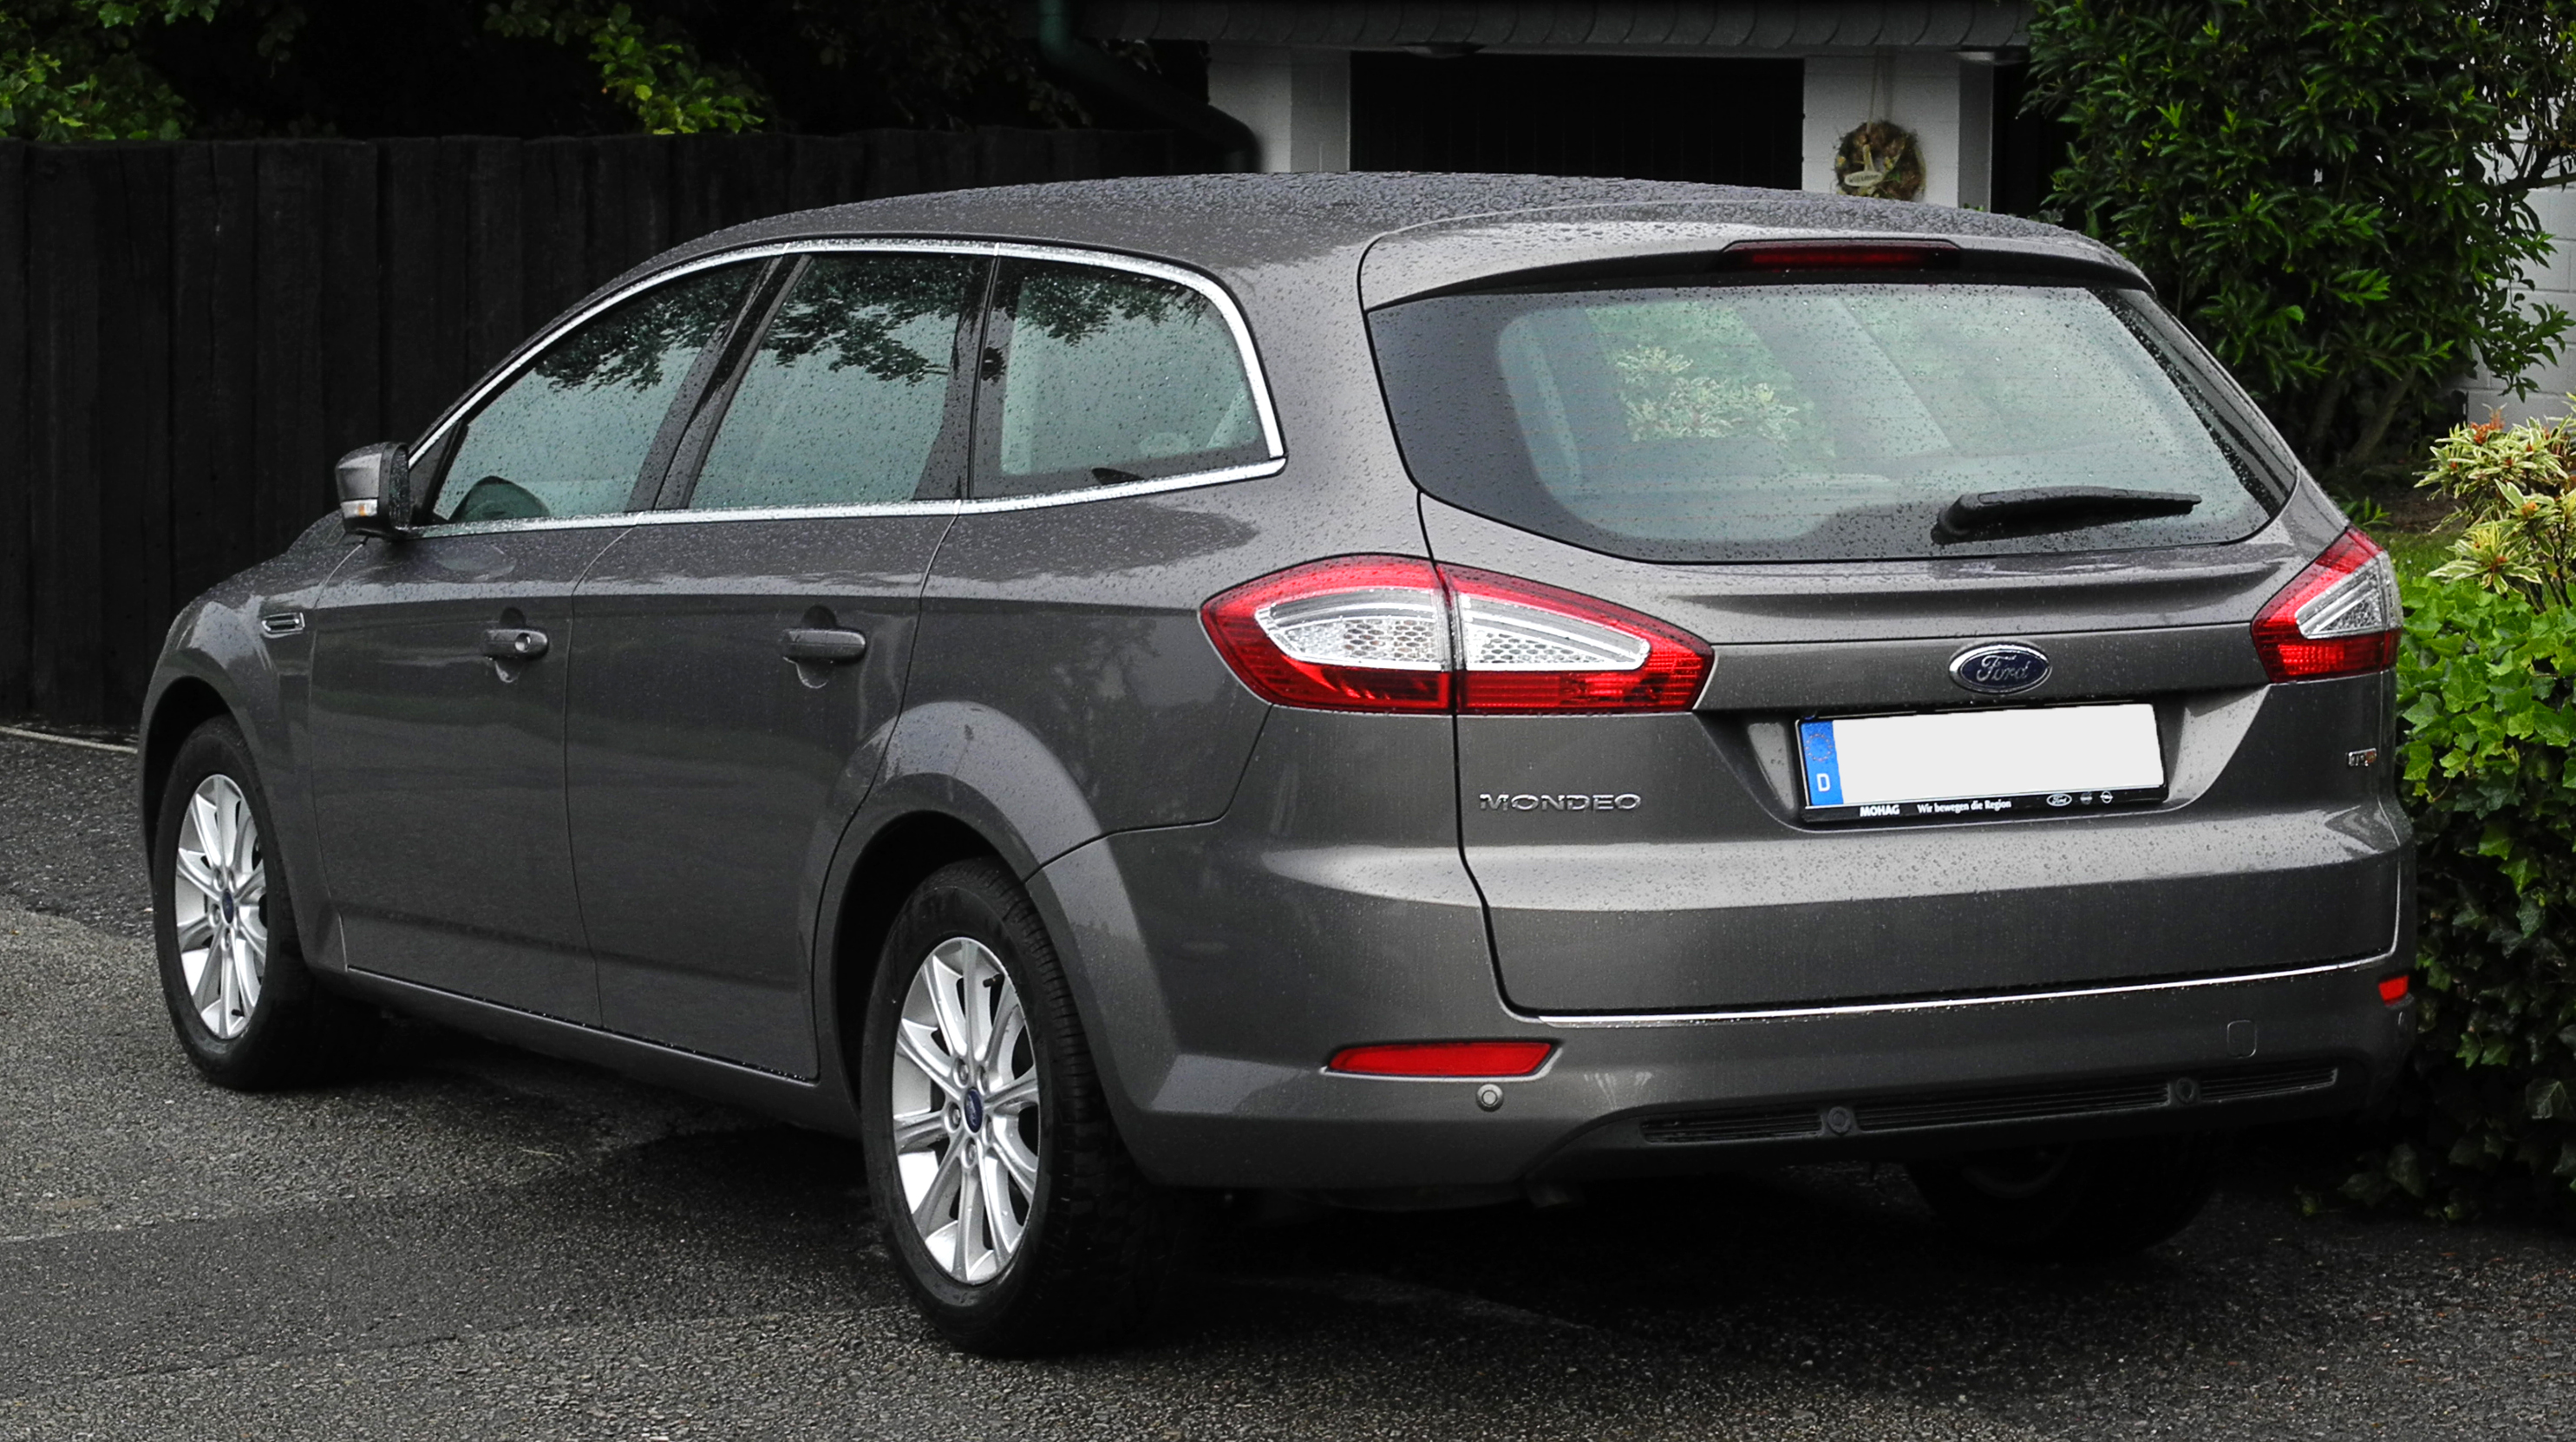 Ford Mondeo 2.0 2011 photo - 5